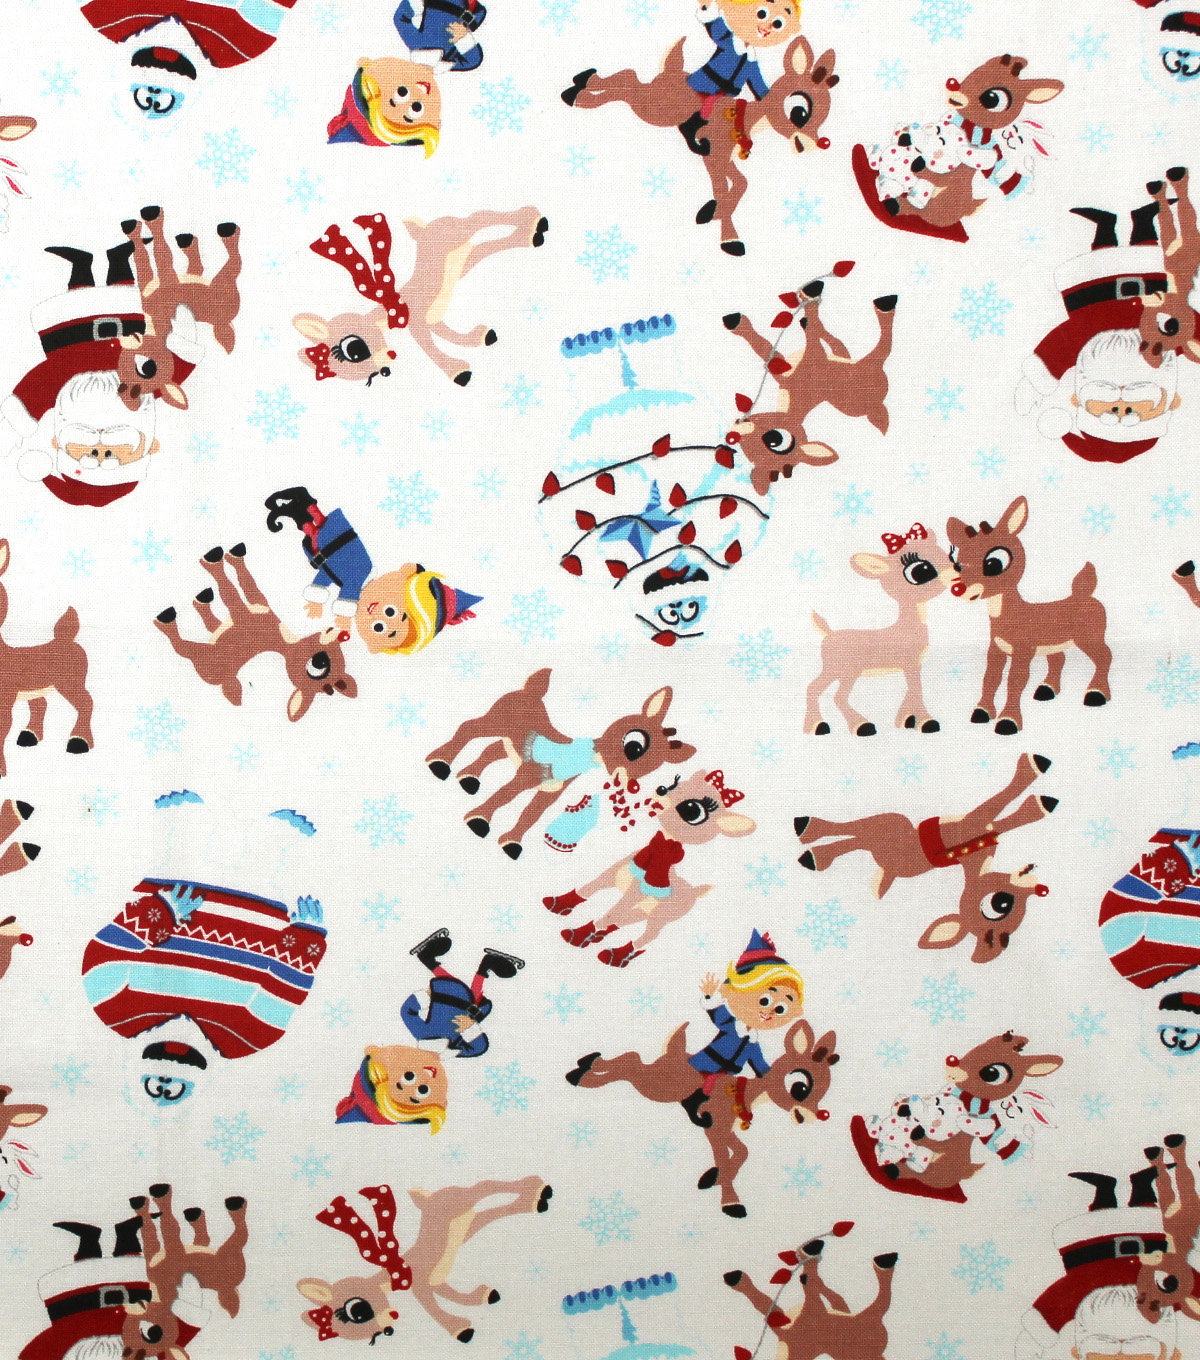 Christmas Rudolph The Red Nosed Reindeer Cotton Fabric Winter Fun